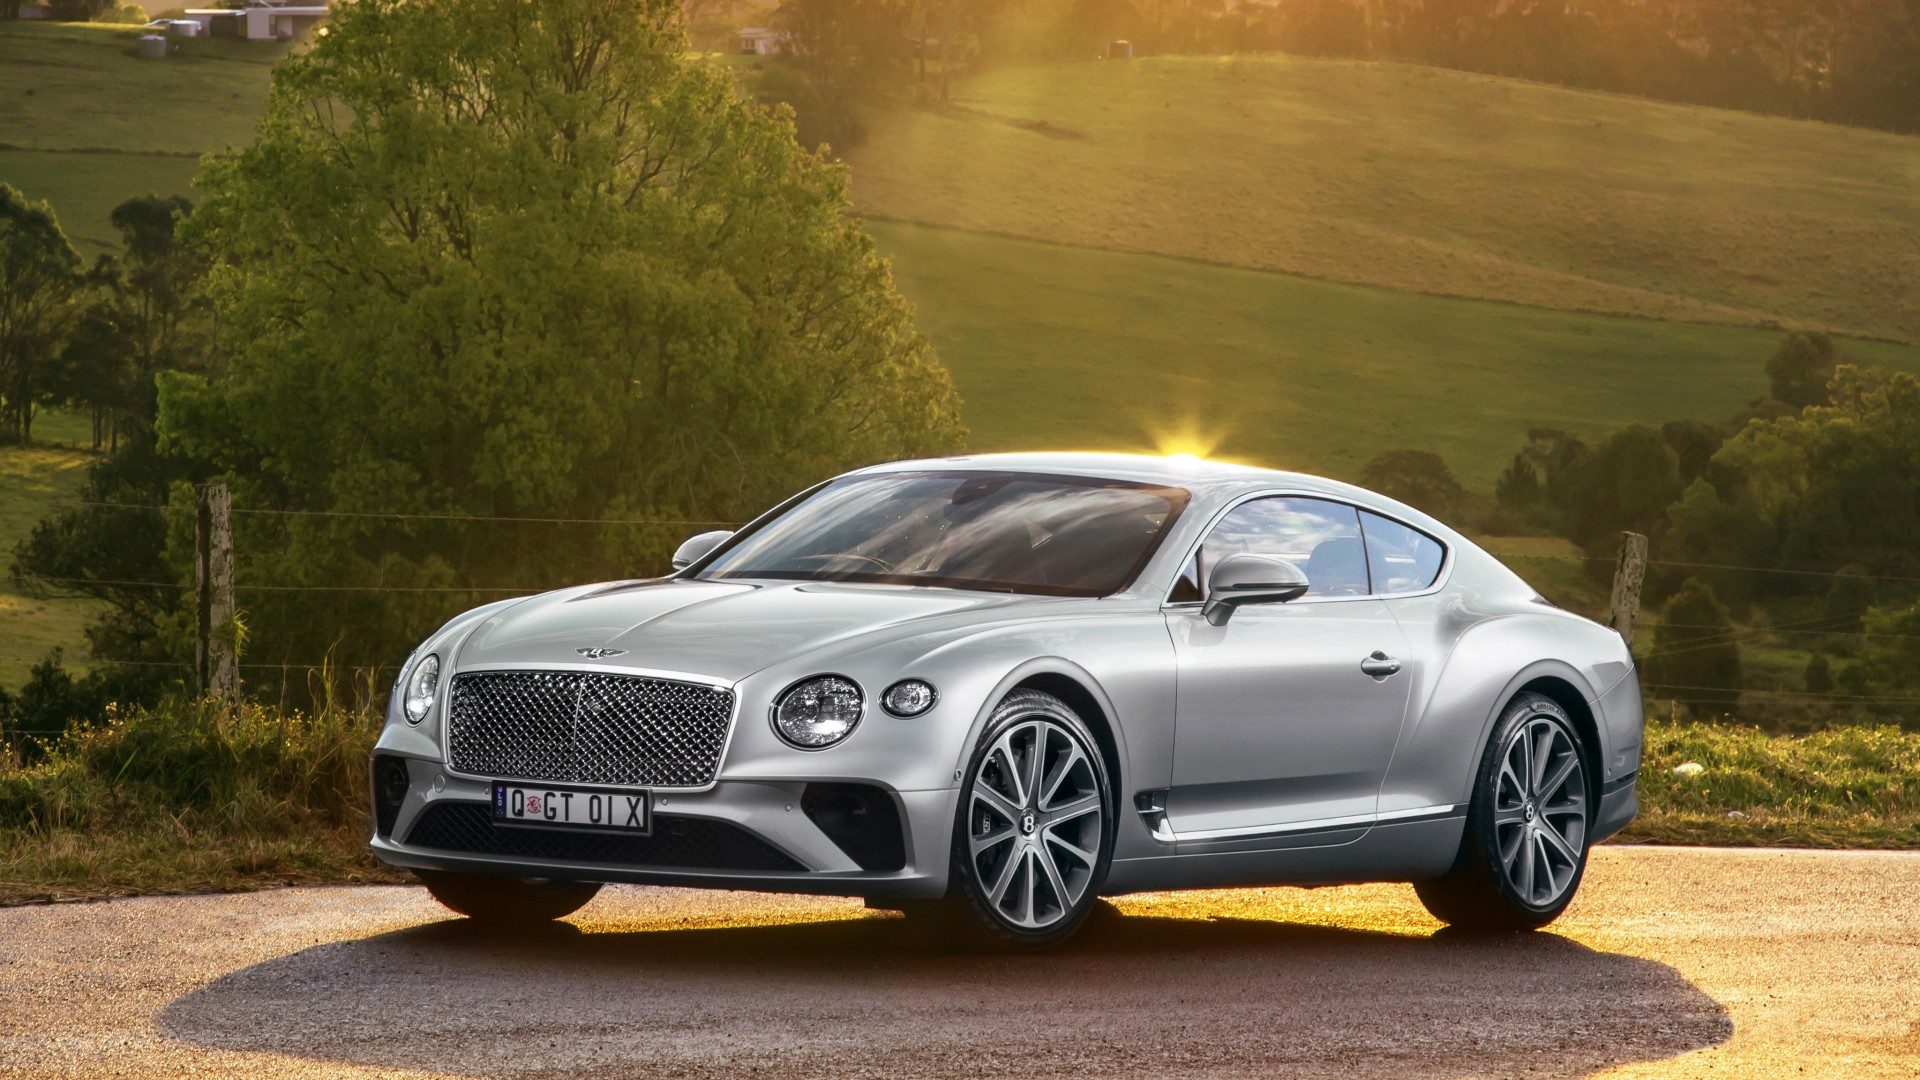 Bentley Continental GT 2018 4K 3 Wallpaper | HD Car ...